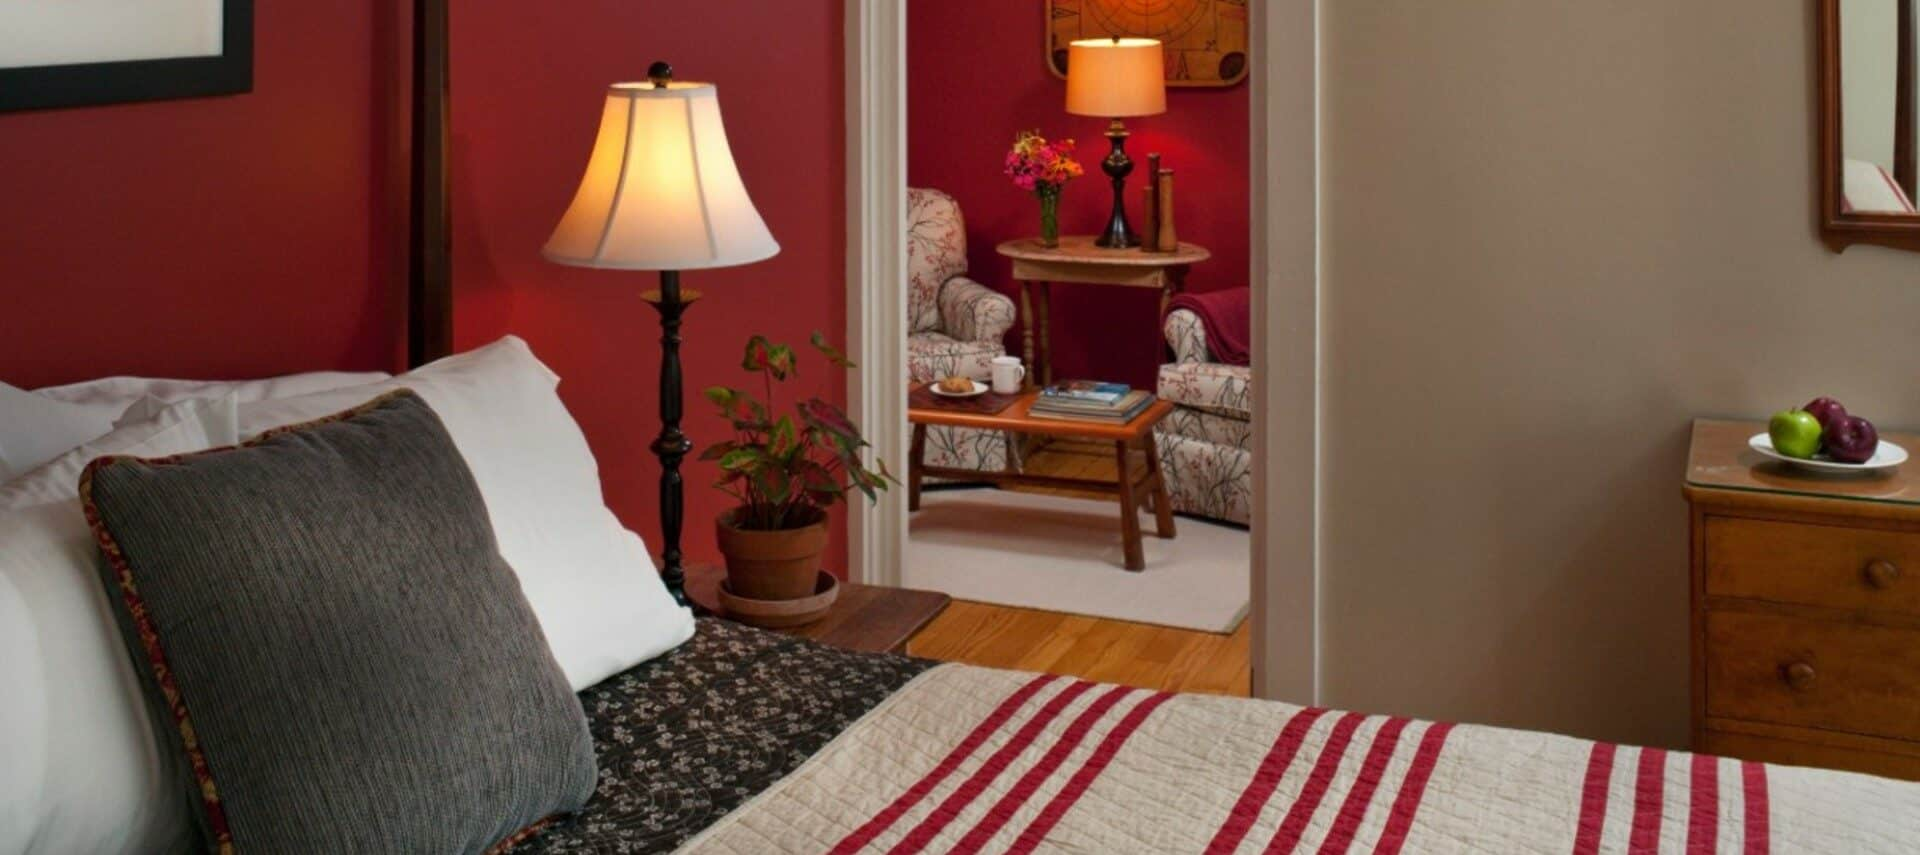 guest room with burgandy walls and striped comfortor